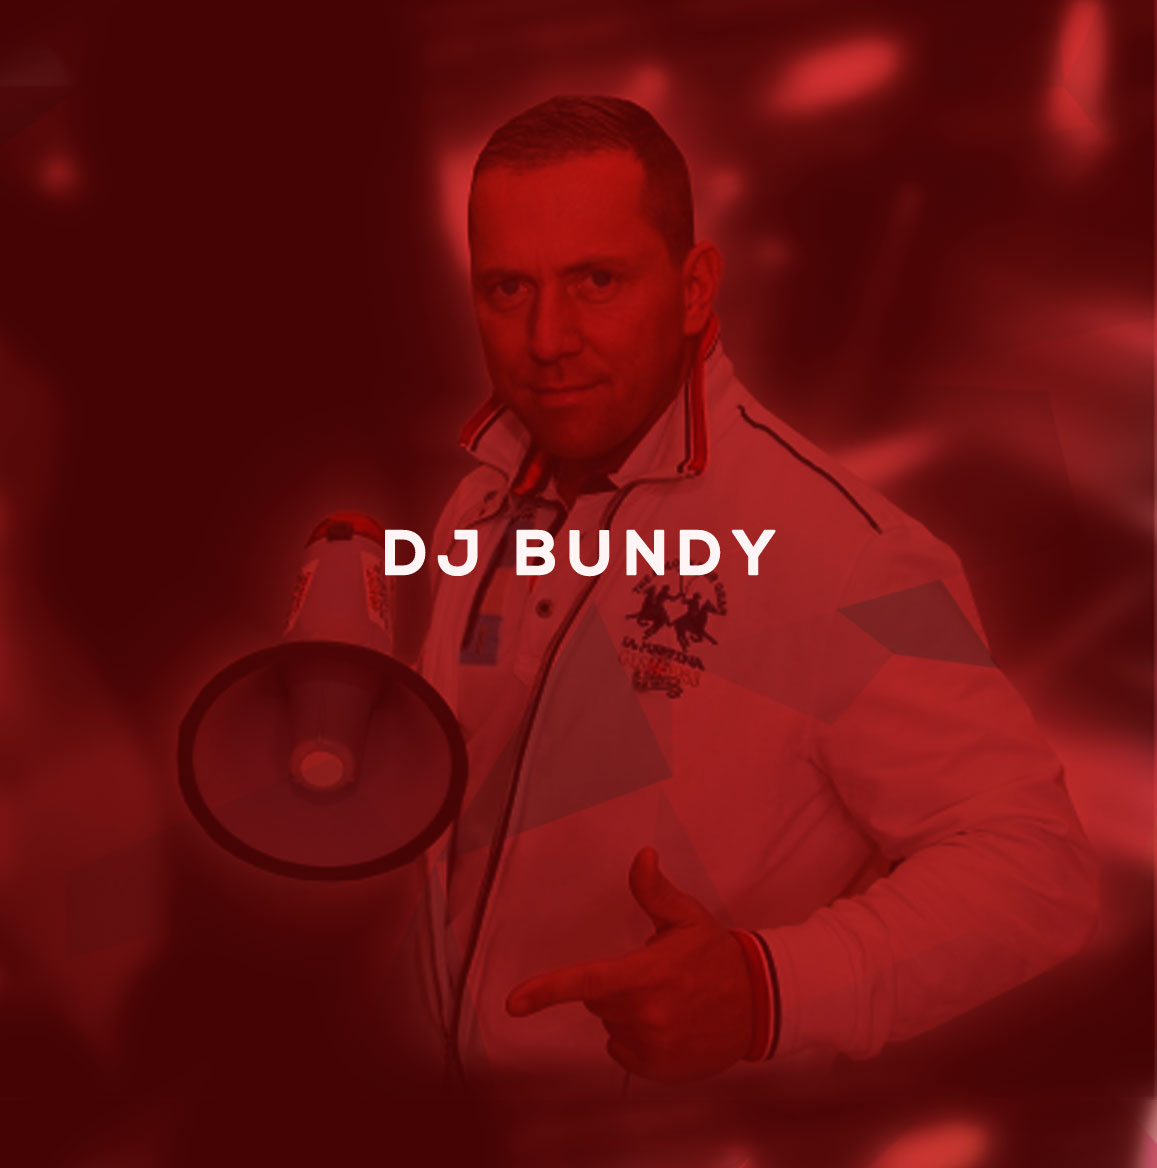 HP-Act-bundy